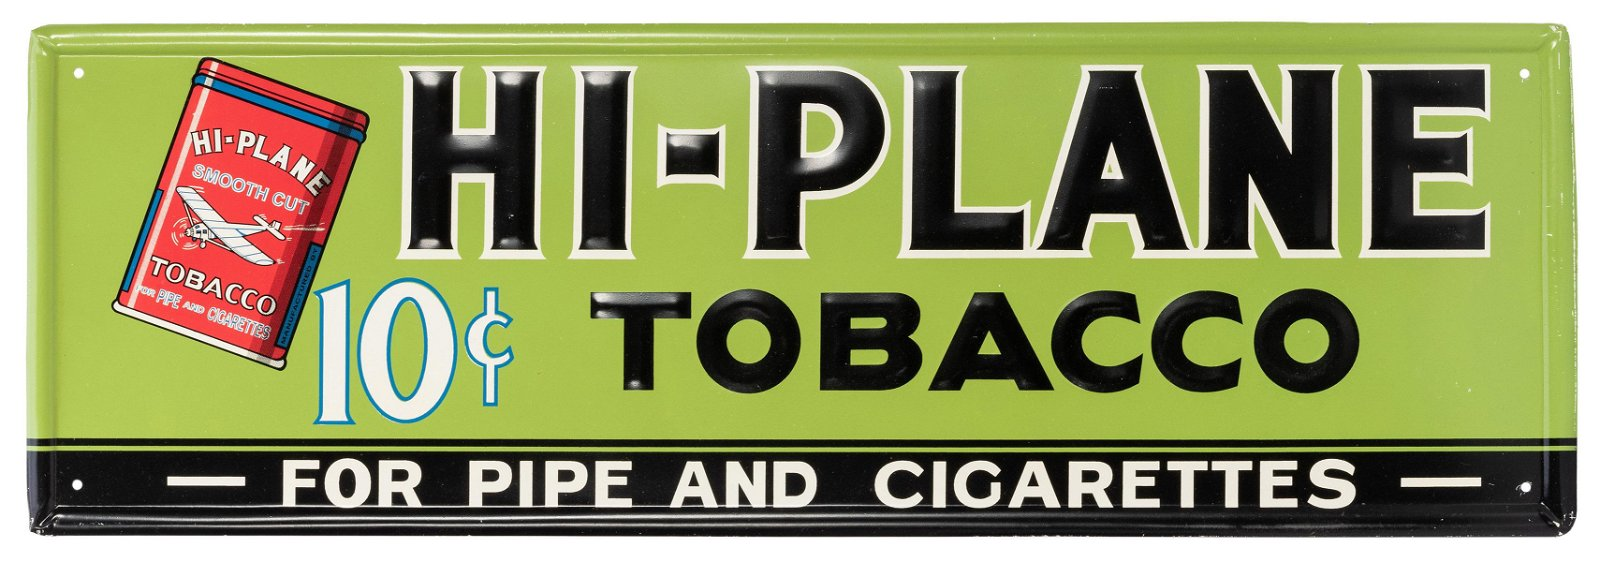 Hi-Plane Tobacco Tin Sign. Brightly colored sign with